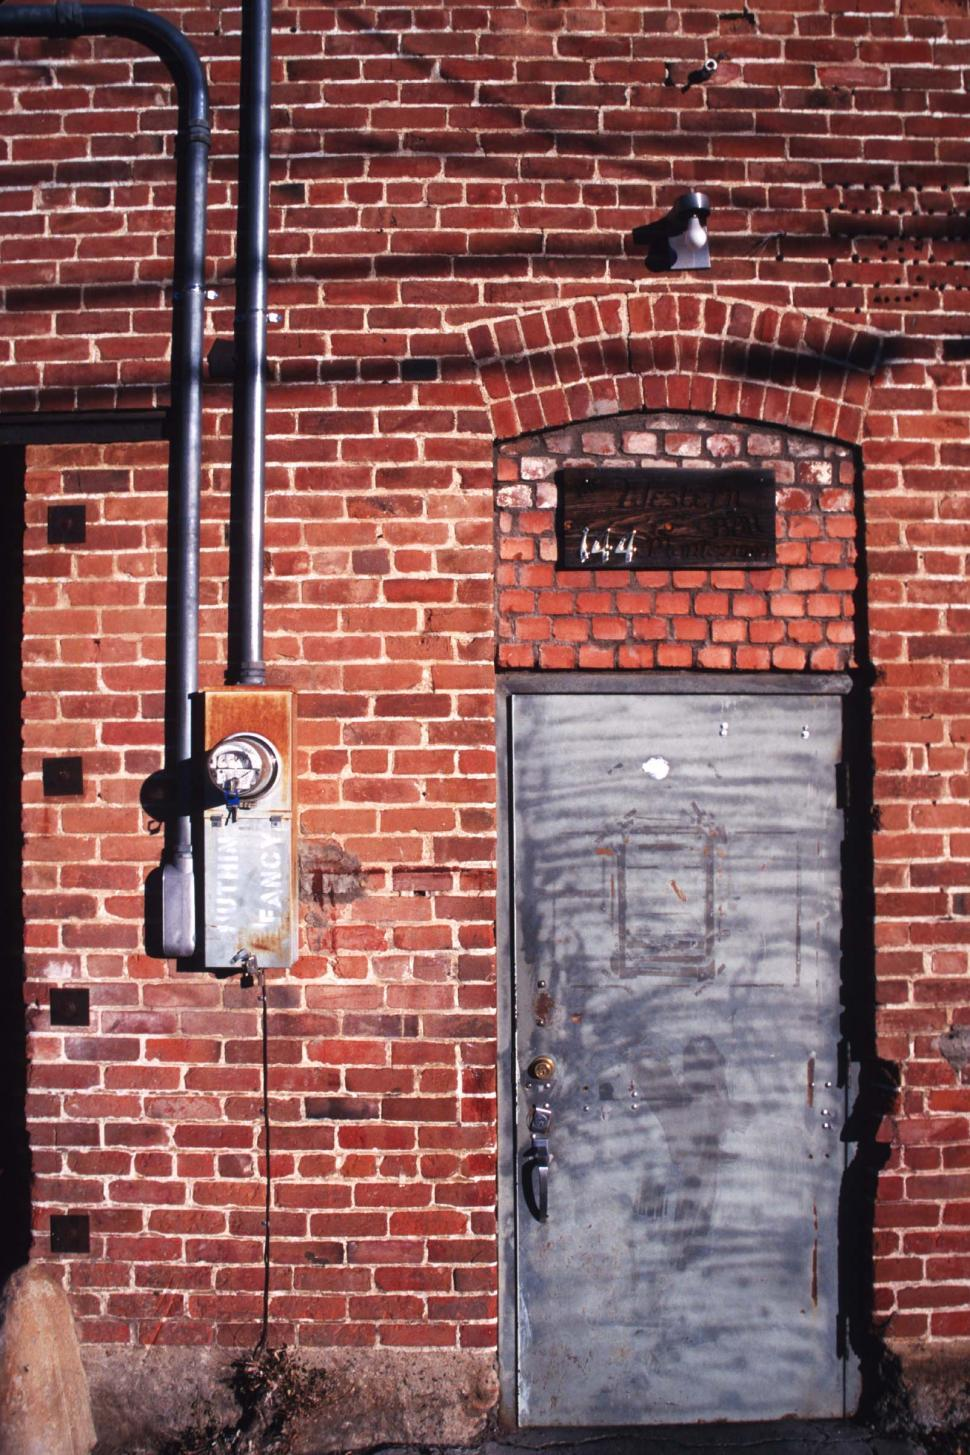 Download Free Stock HD Photo of Brick back entrance Online